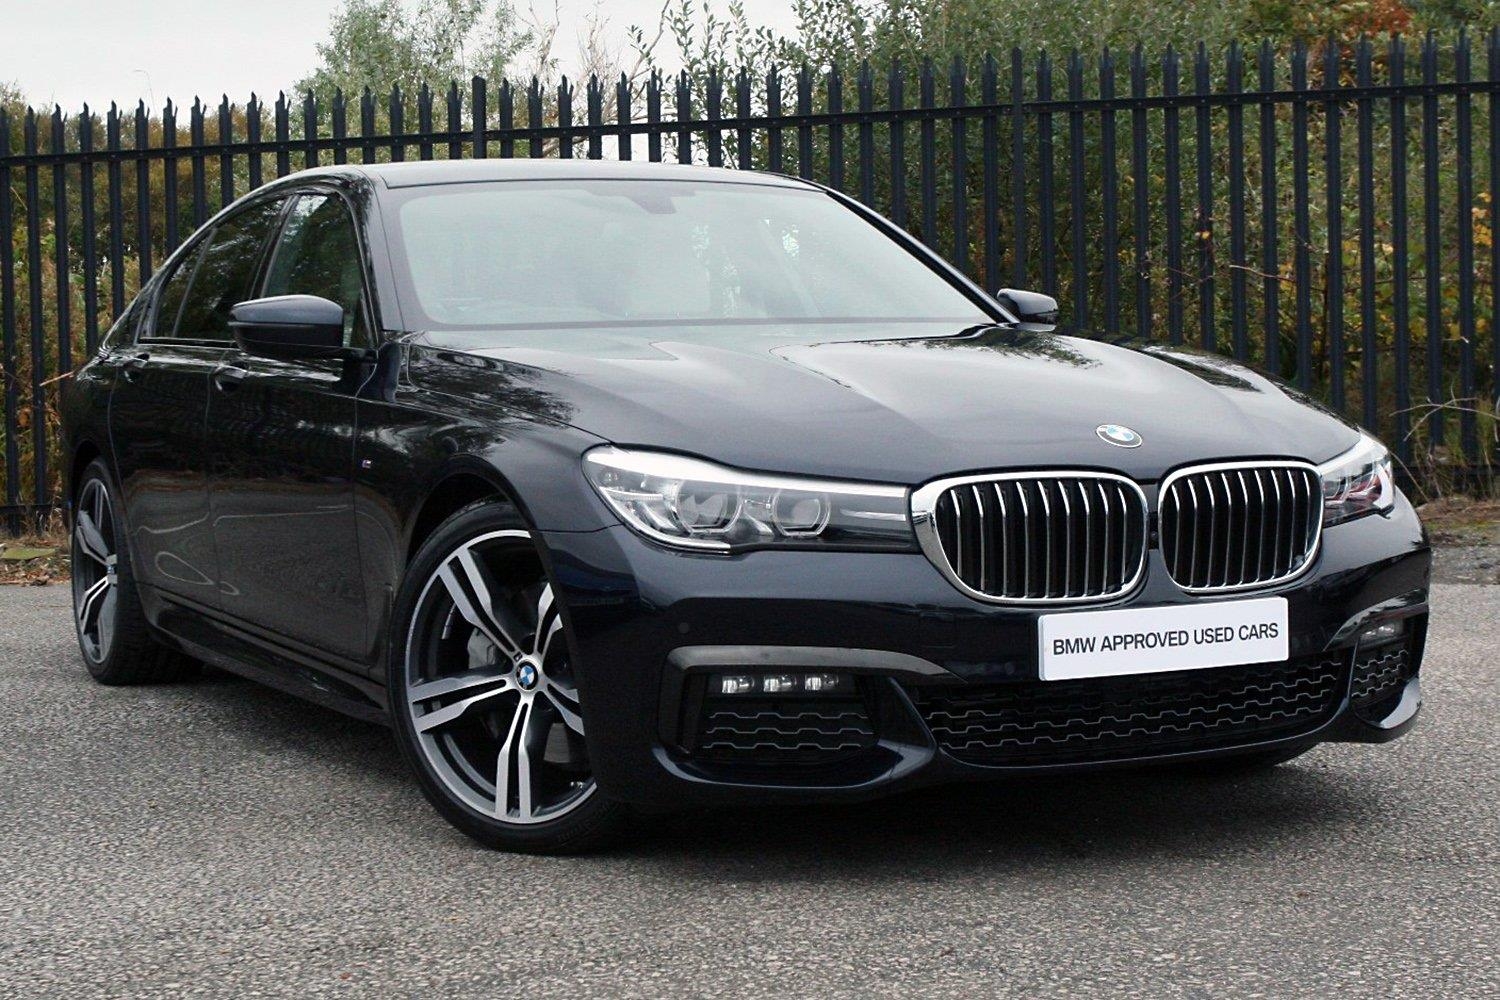 BMW 7 Series Saloon PG66OTK - Image 4